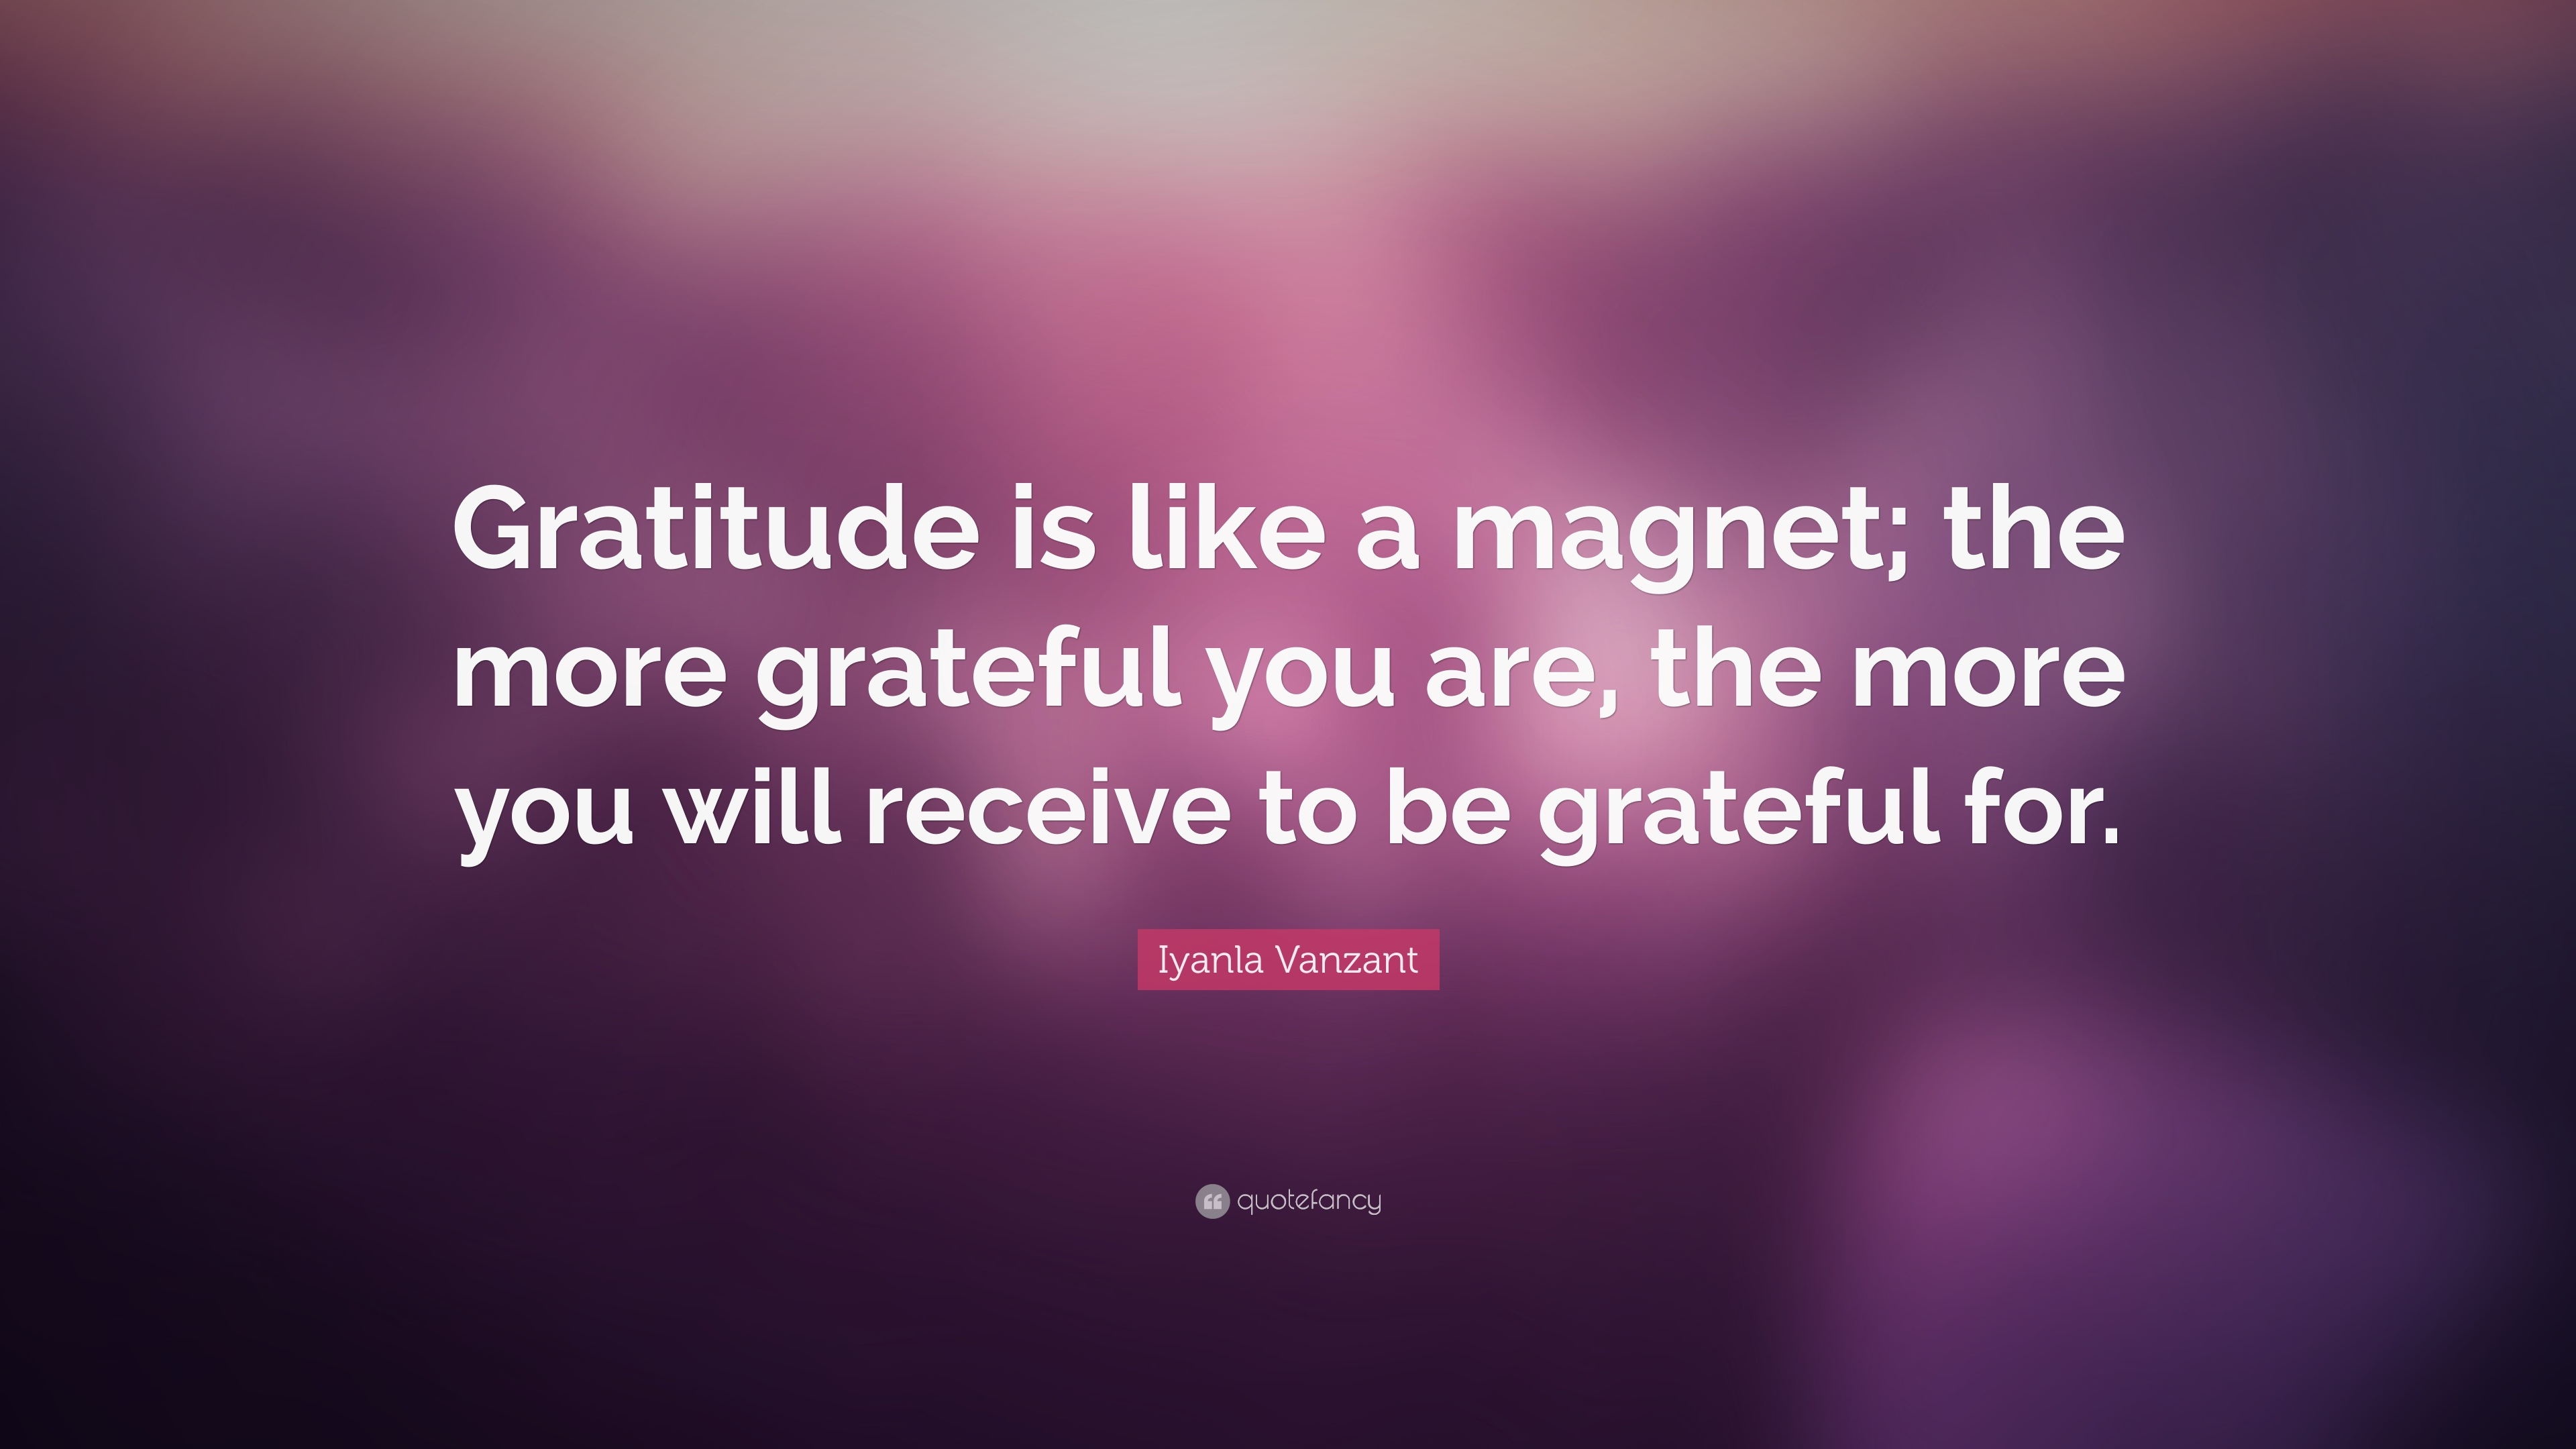 Iyanla Vanzant Quote: U201cGratitude Is Like A Magnet; The More Grateful You Are